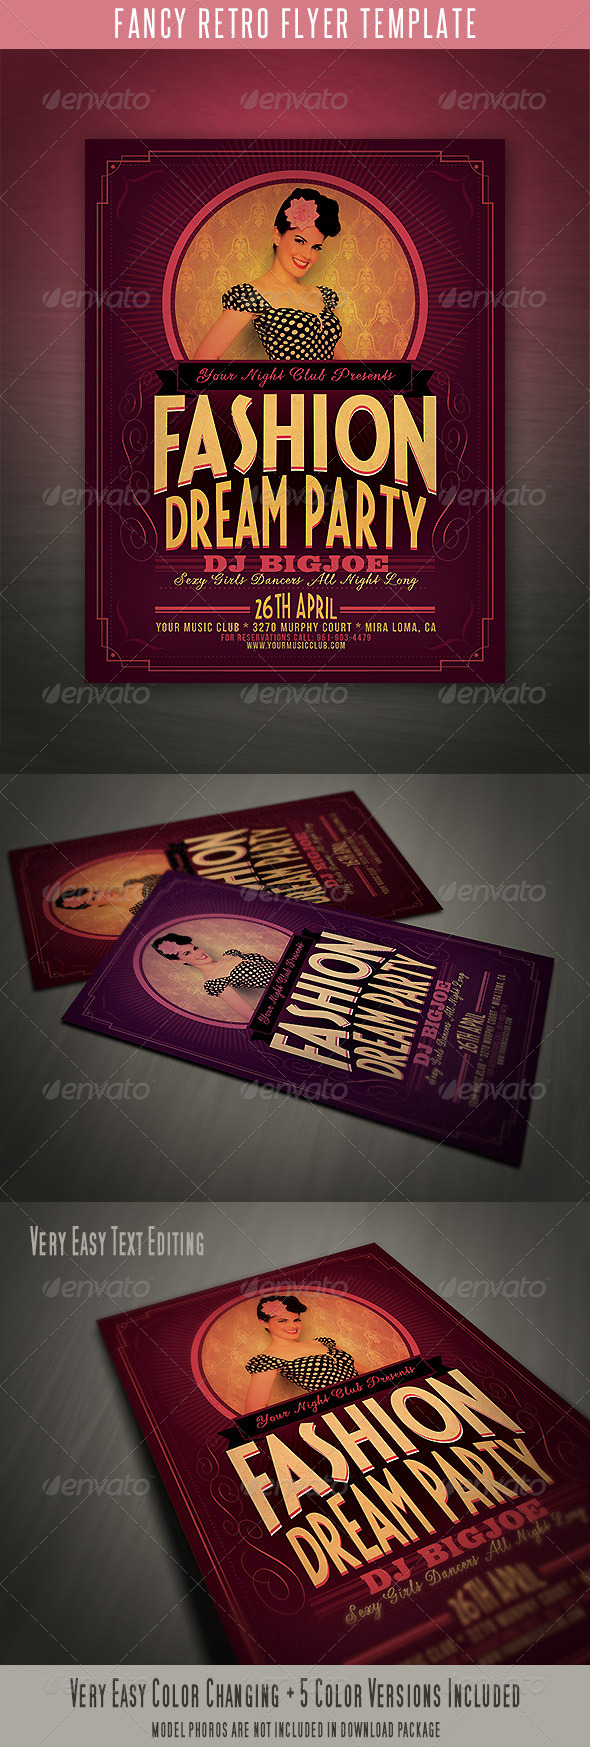 Fancy Retro Flyer Template - Events Flyers